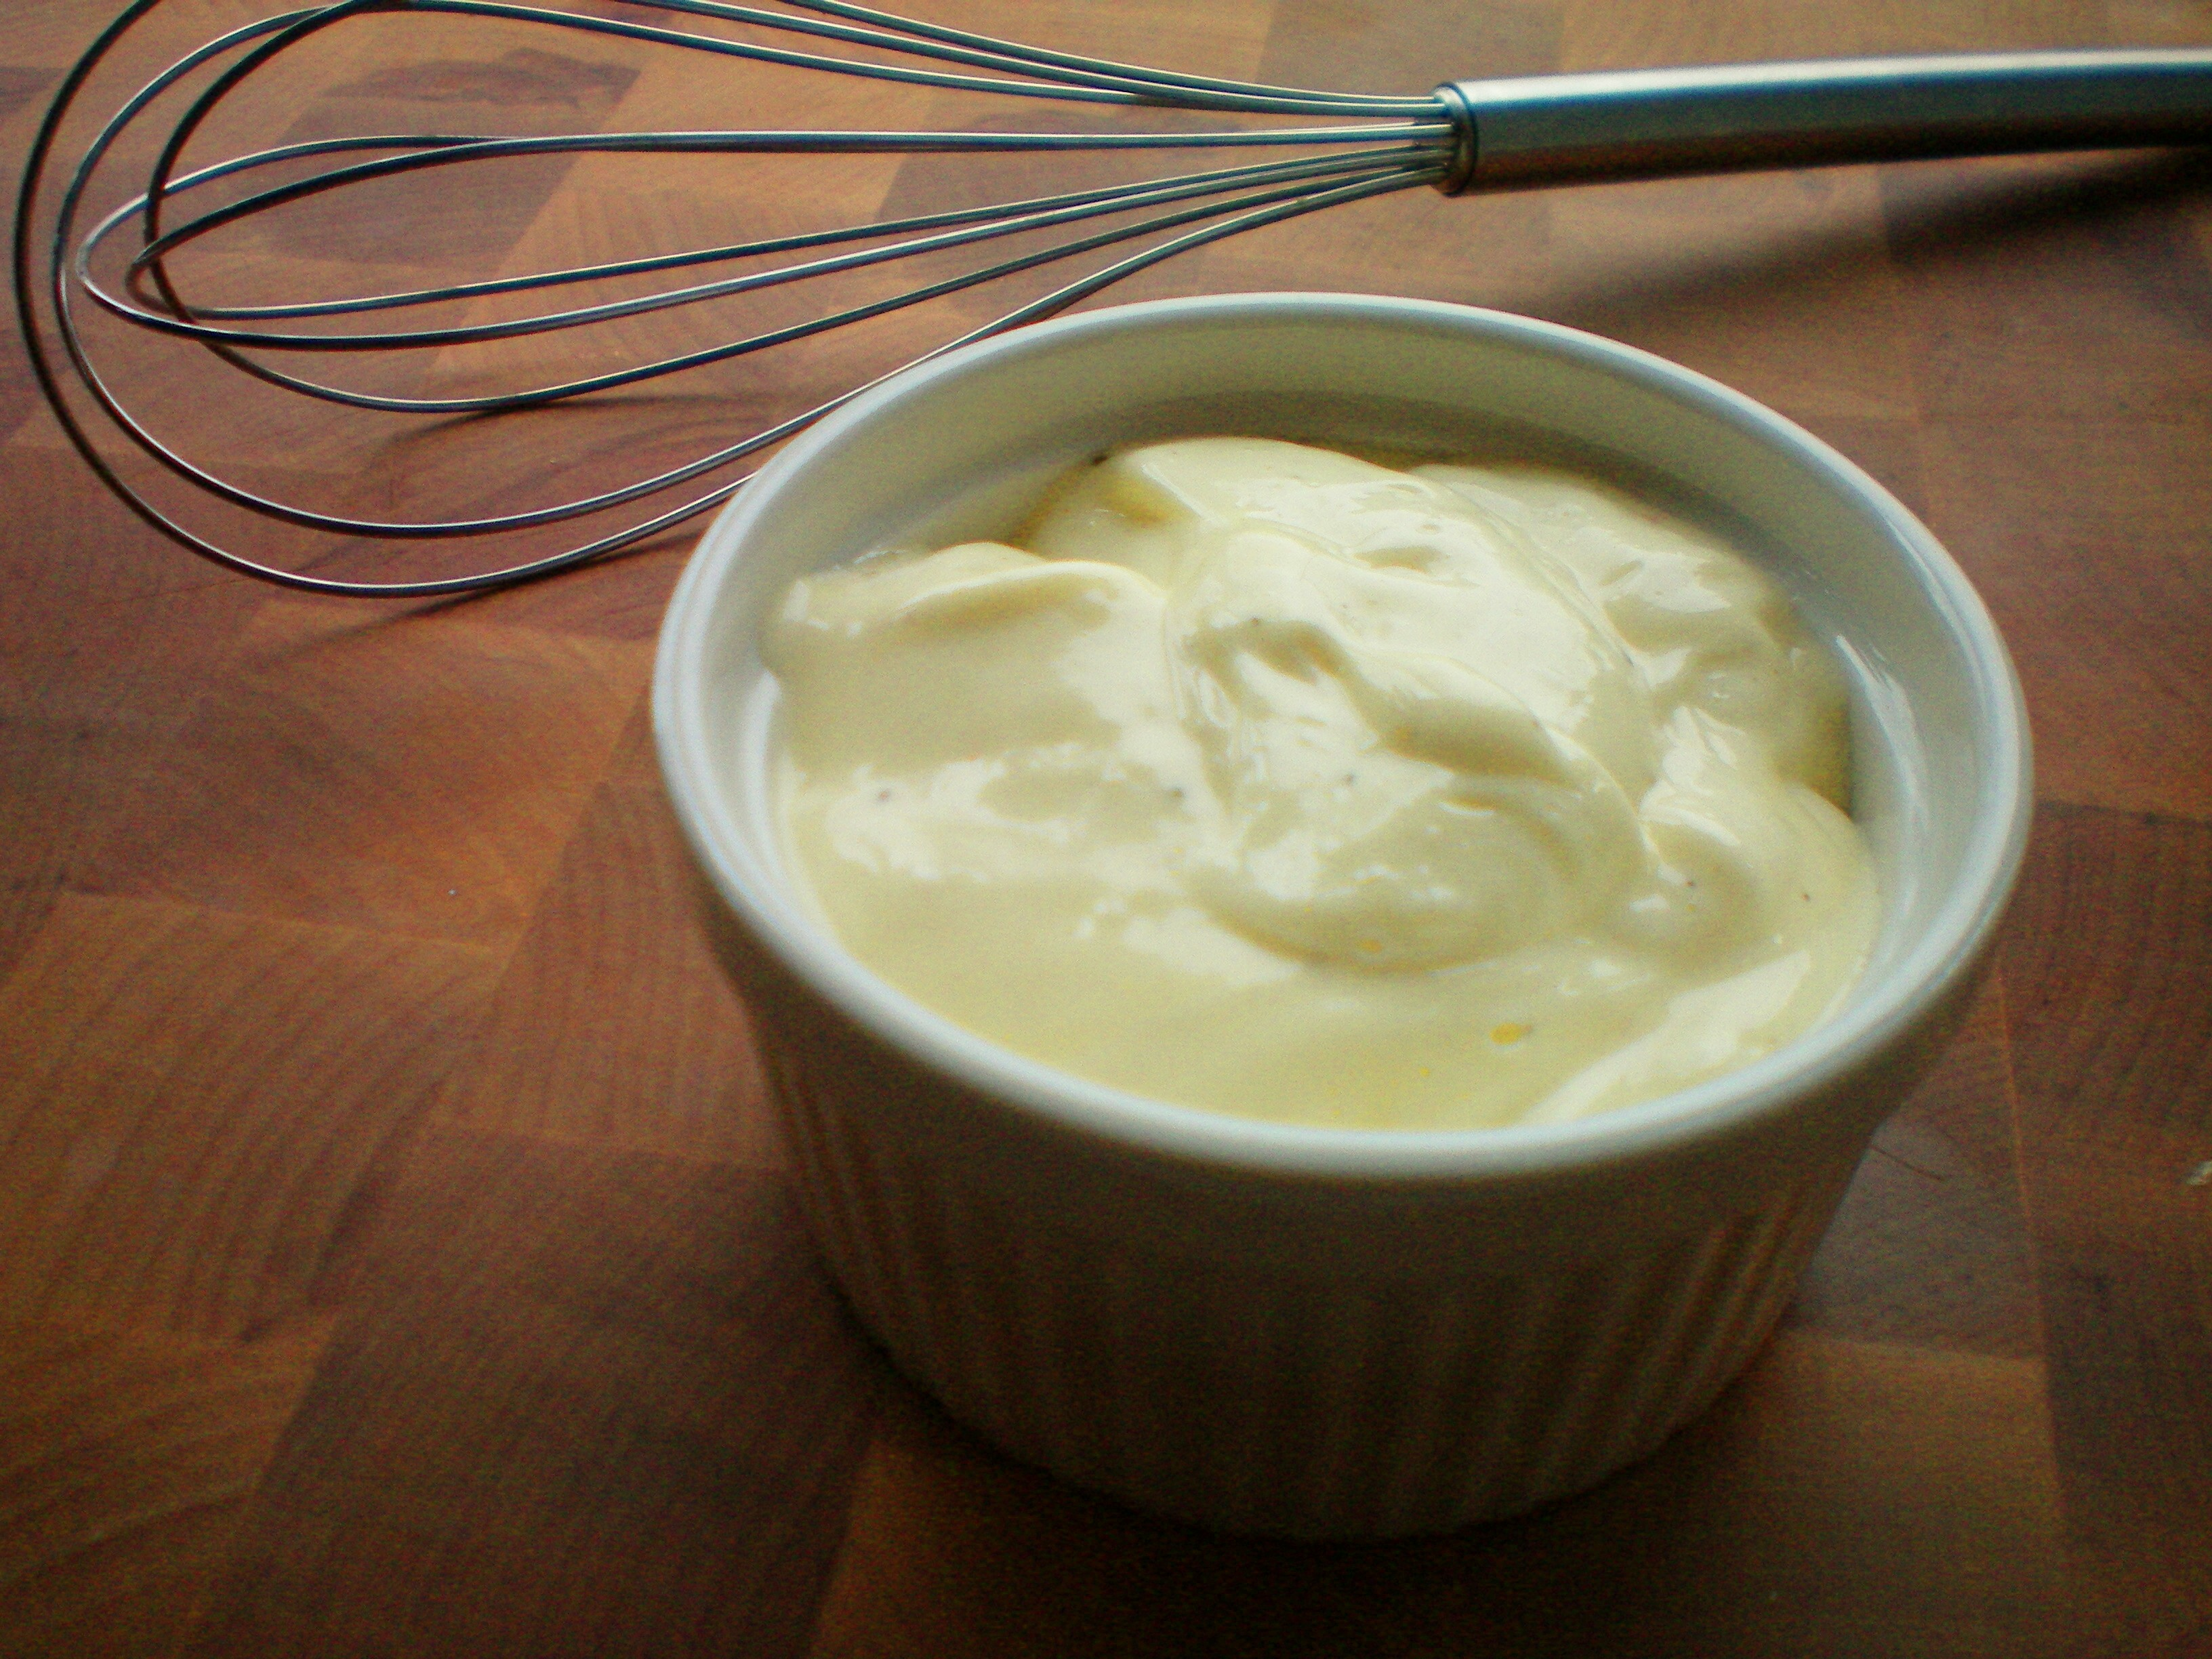 Traditional Aïoli - Garlic Mayonnaise - Gratinee